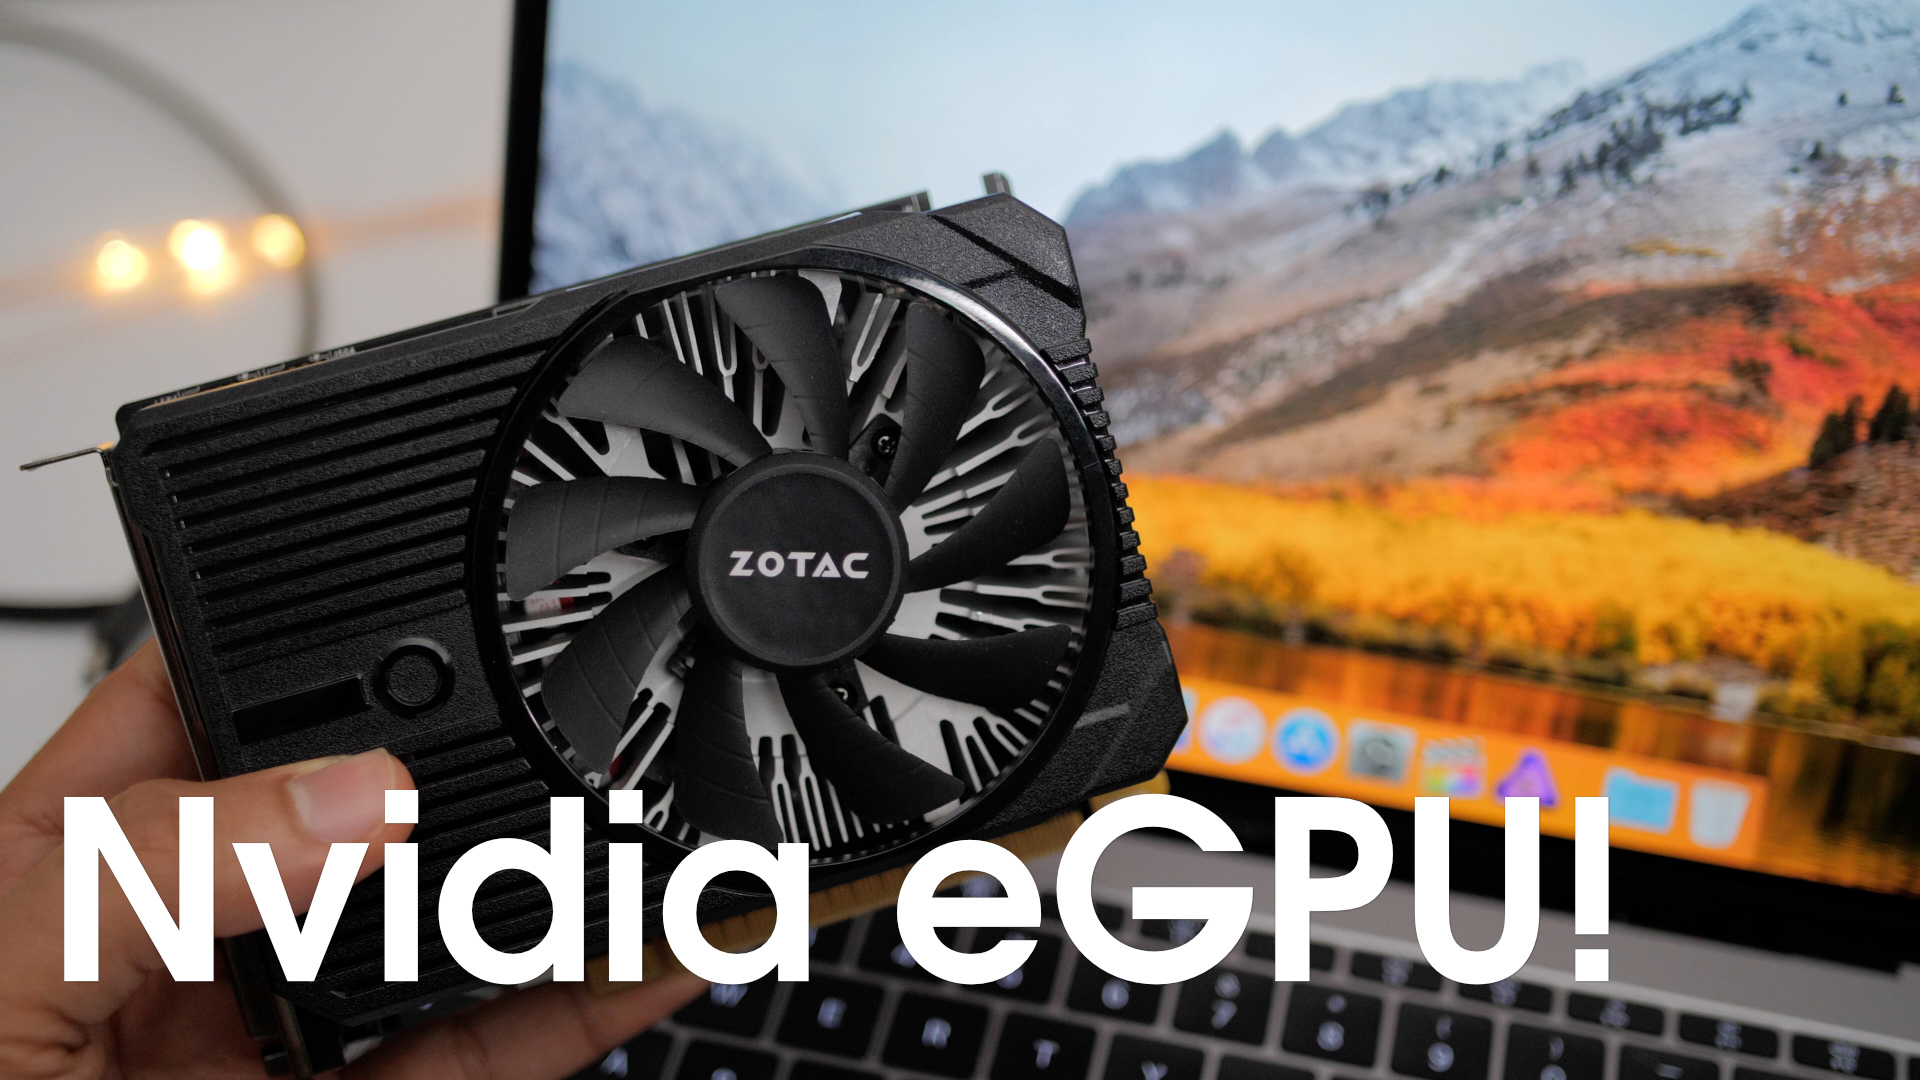 Unofficial NVIDIA eGPU support on macOS arrives w/ impressive